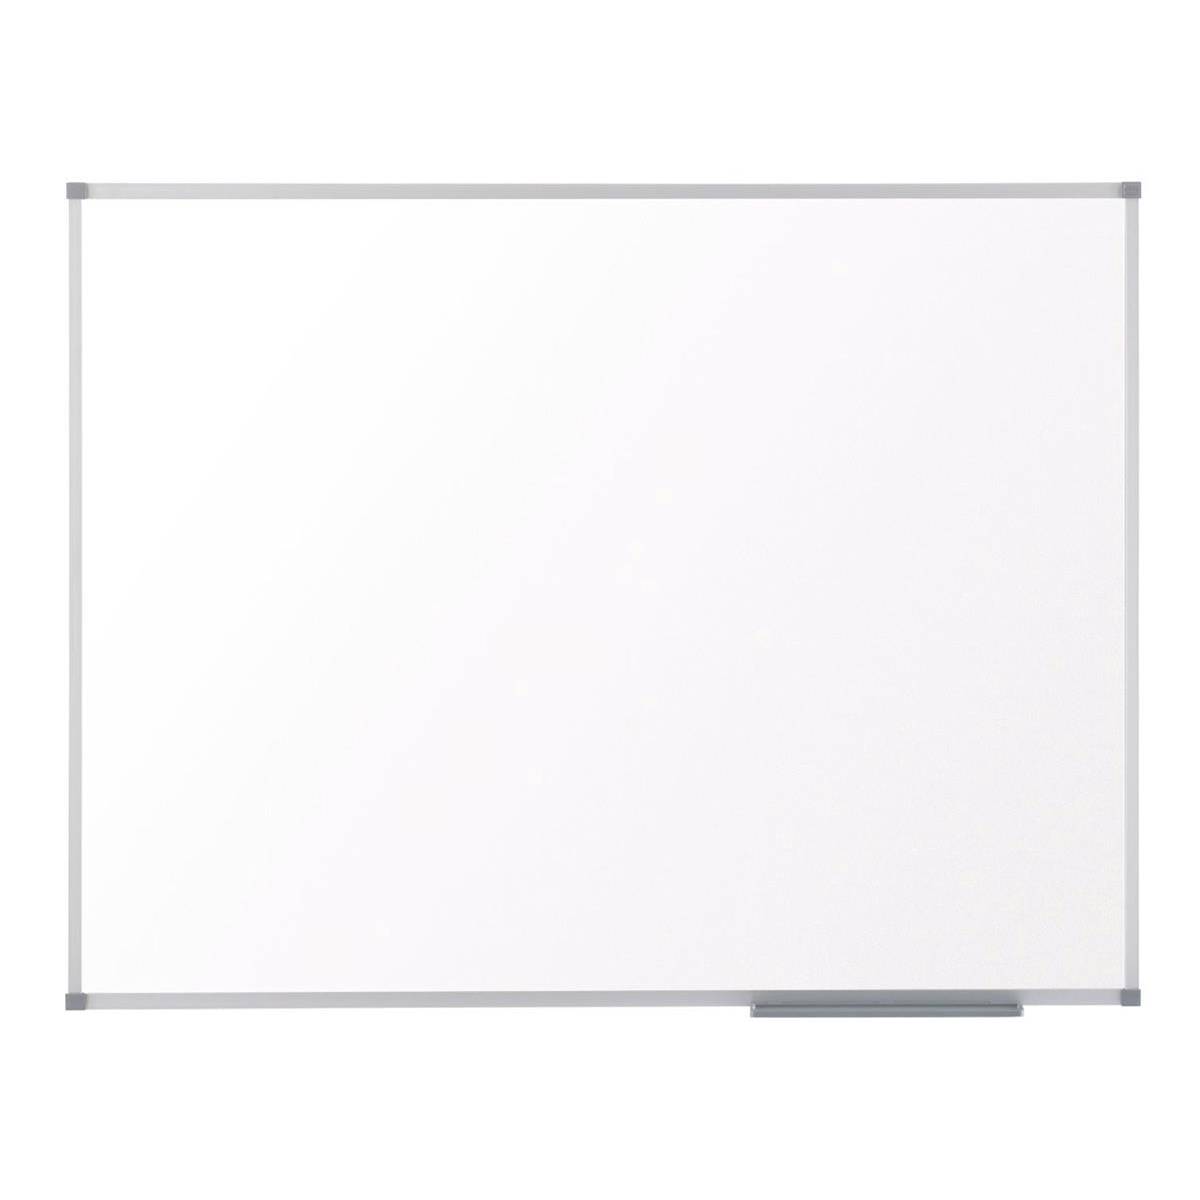 Nobo Classic Drywipe Board Magnetic with Fixings 1200x2100mm Aluminium Ref 1902649 [COMPETITION]